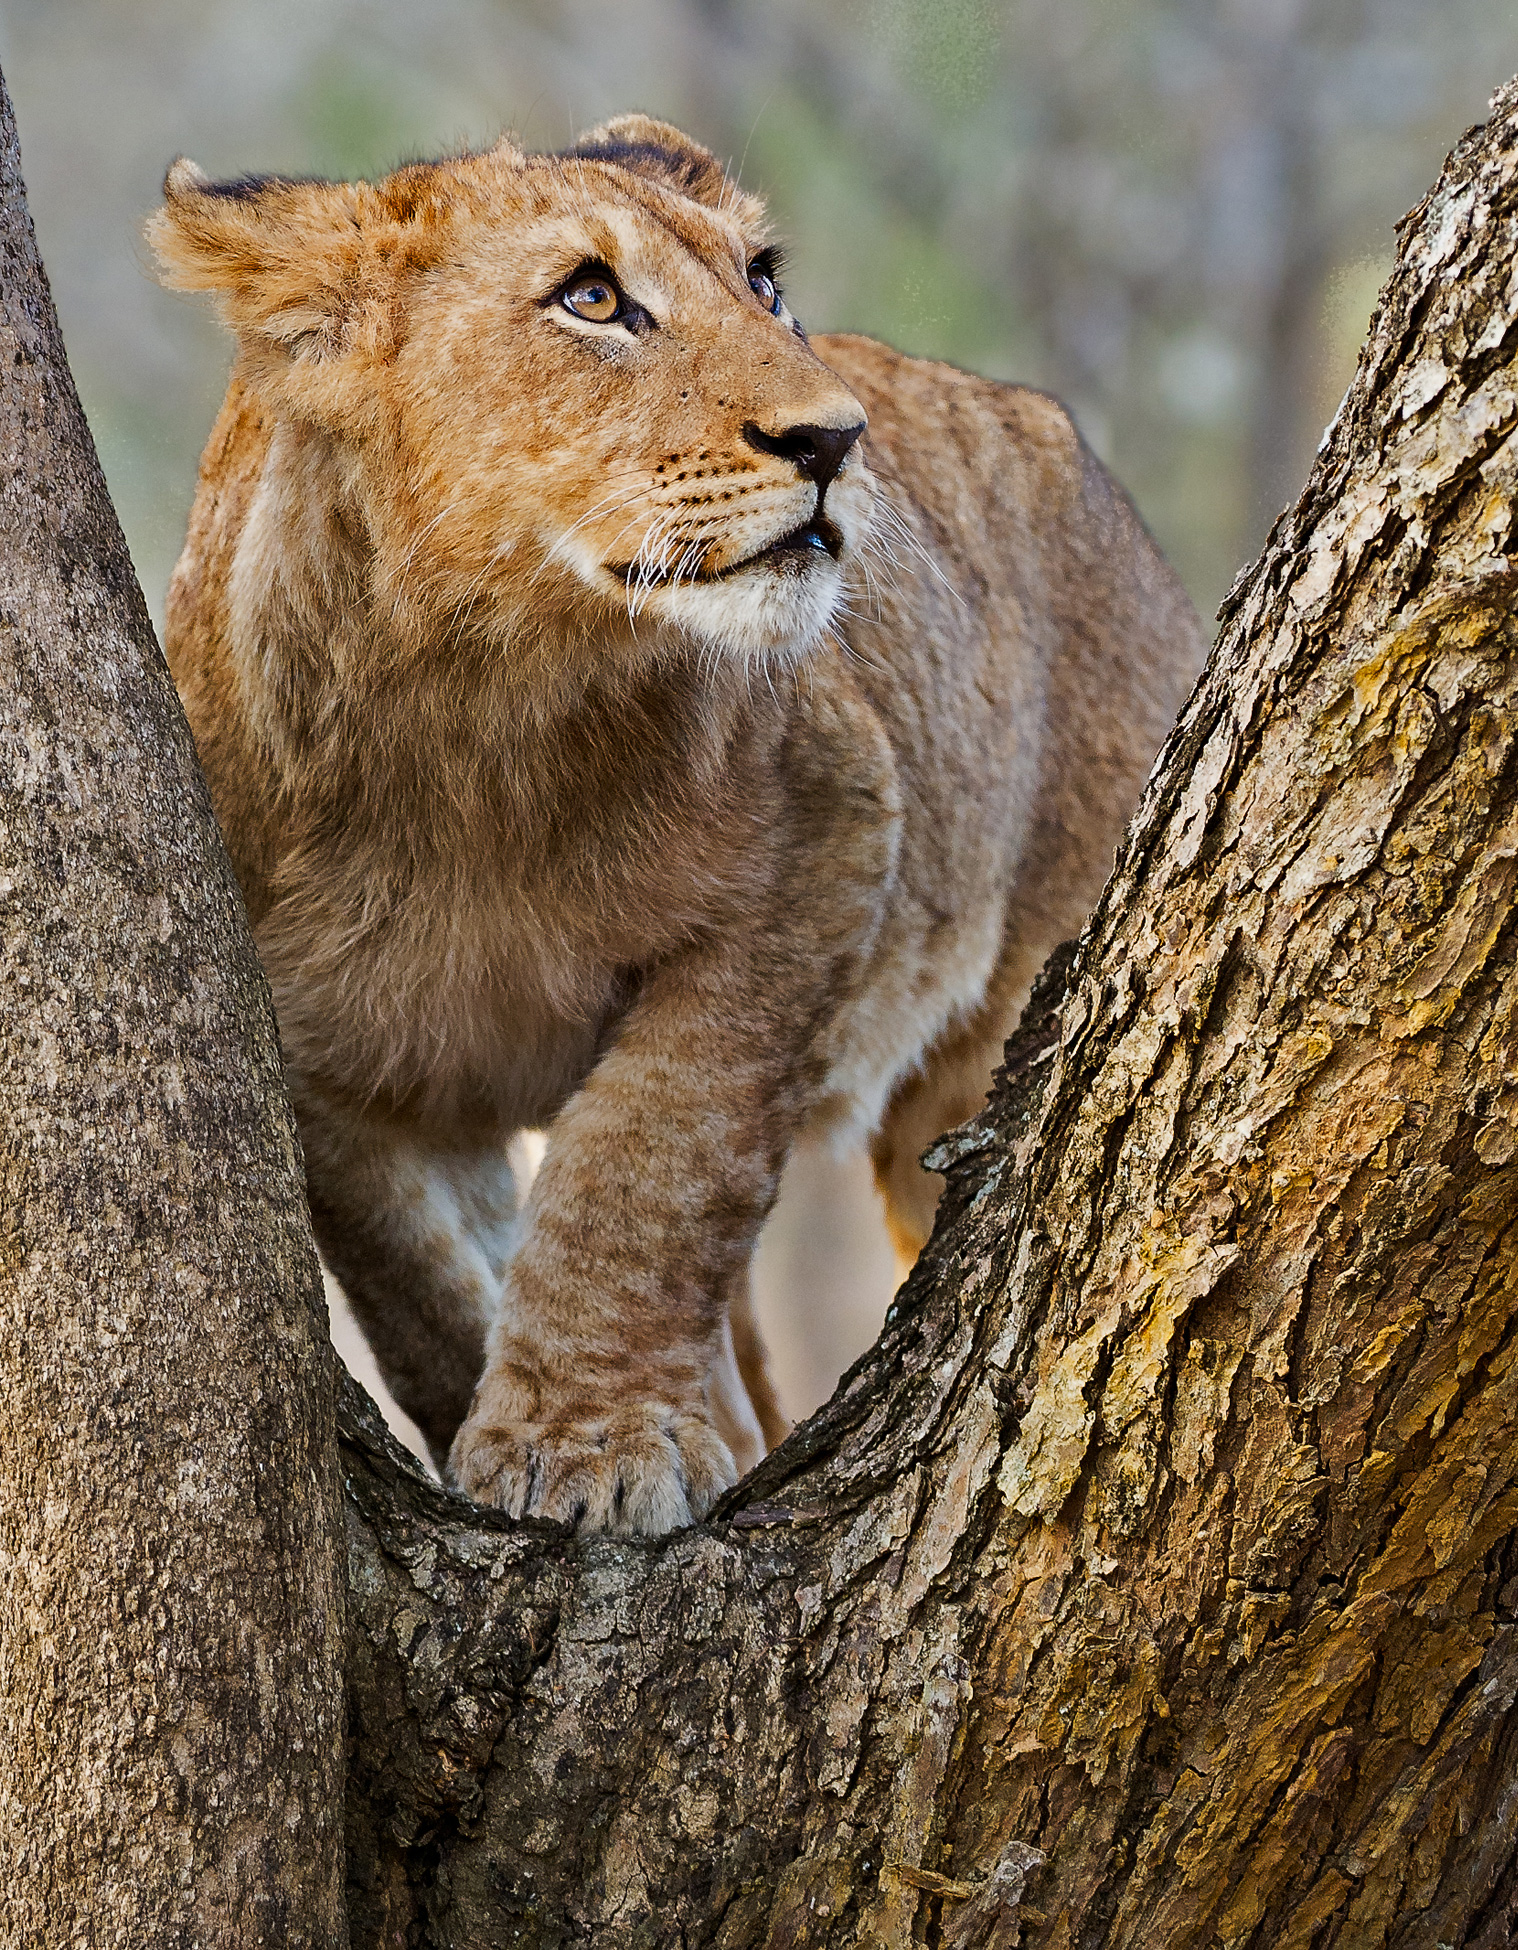 cub-in-tree©WimVorster